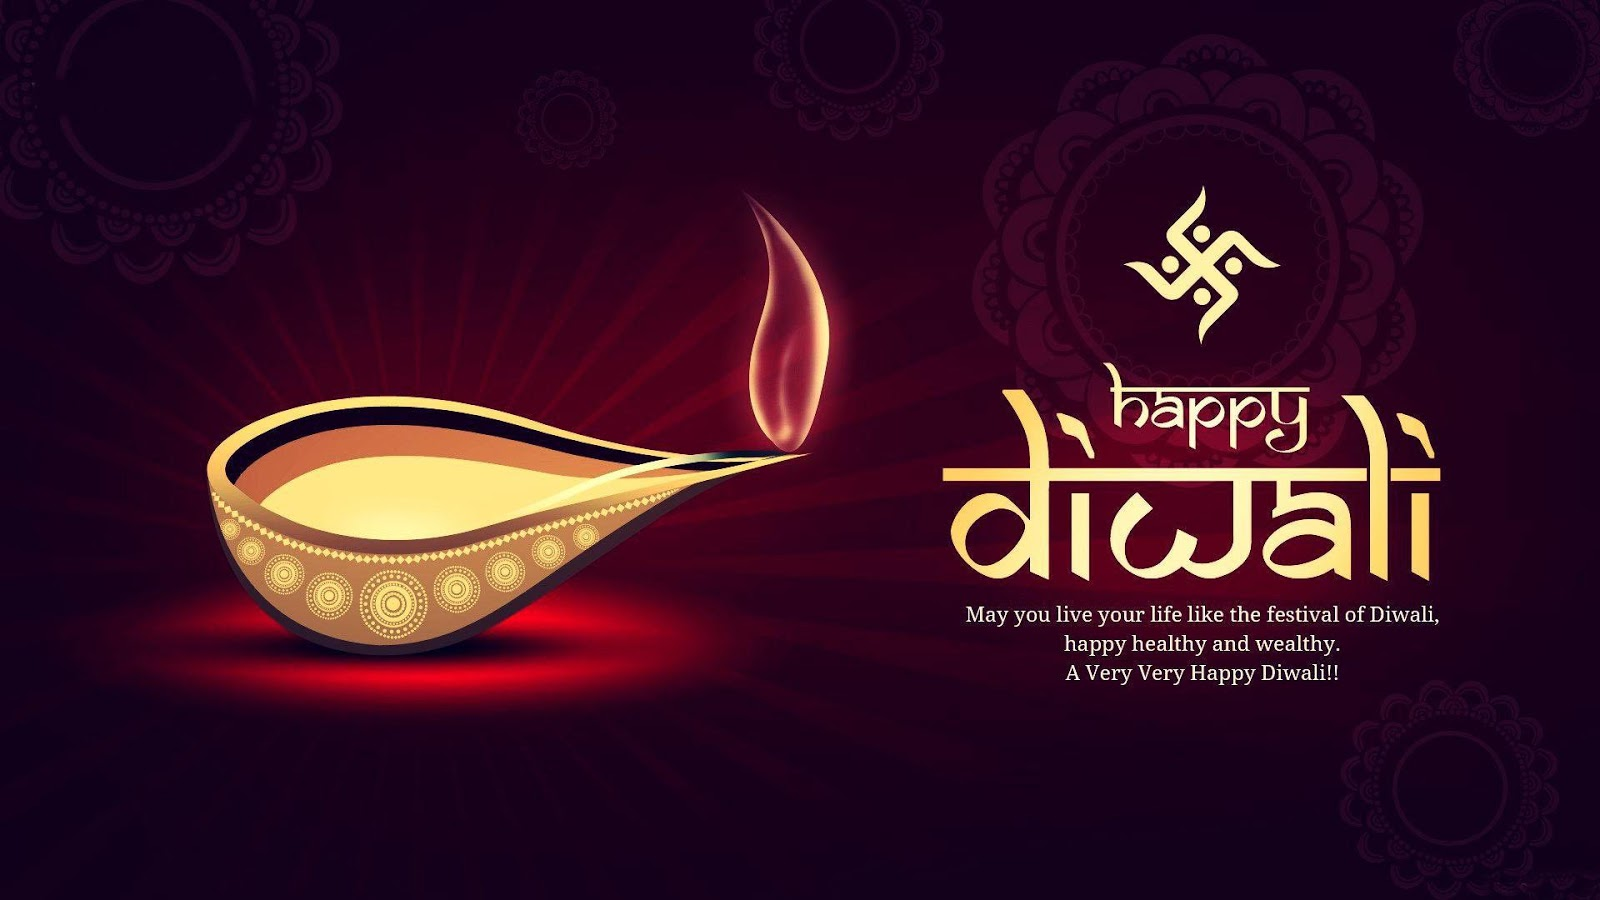 Happy diwali images wishes greetings messages in marathi tamil hindi happy diwali 2018 m4hsunfo